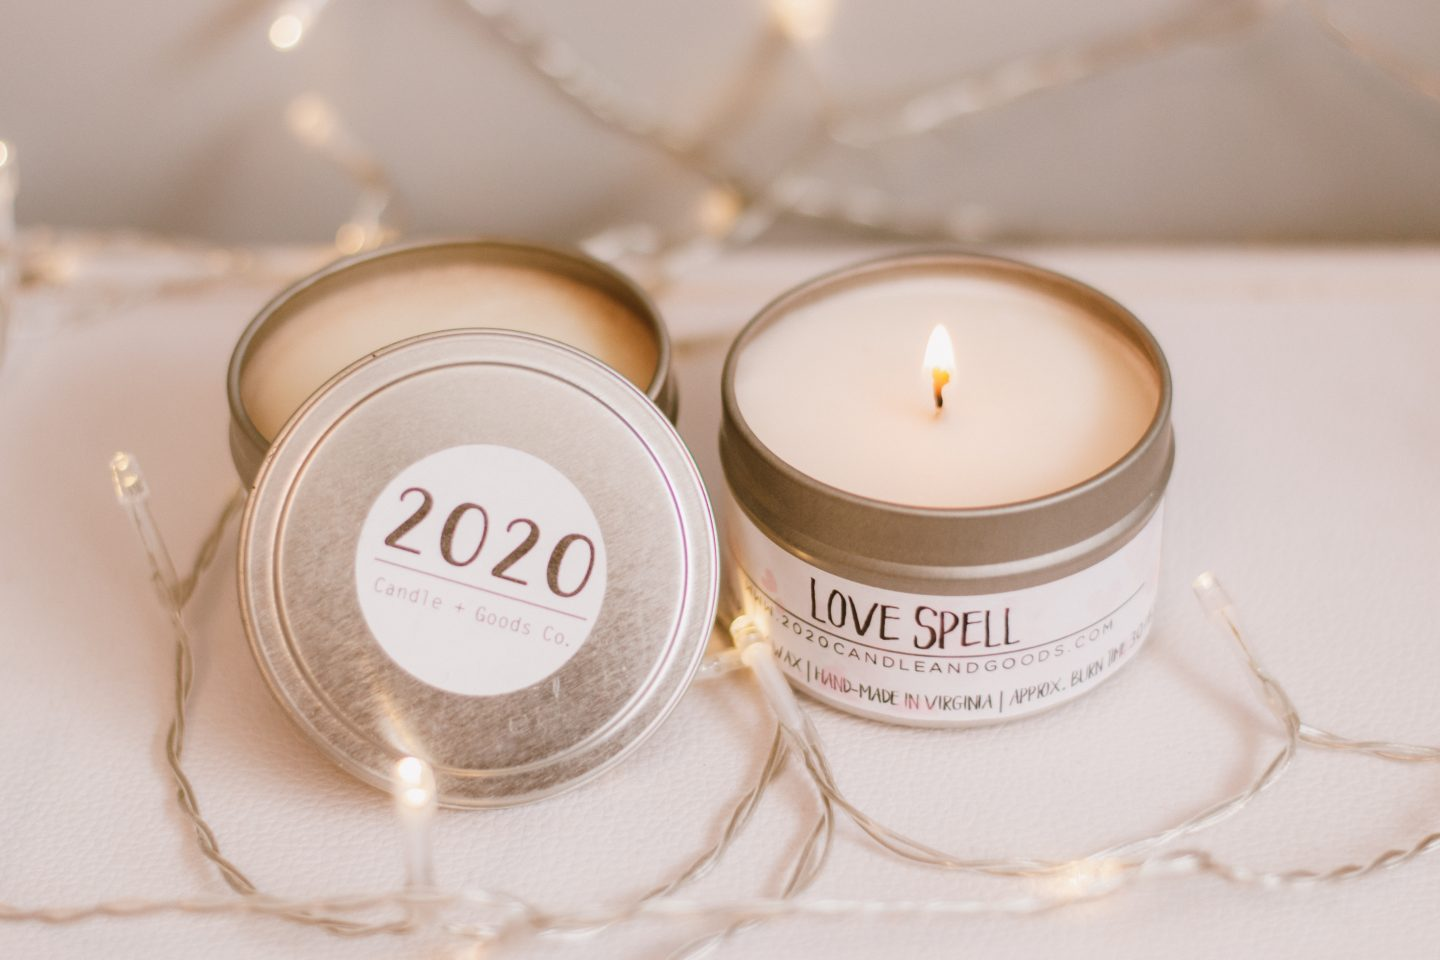 Small Business Spotlight- 2020 Candles + Goods